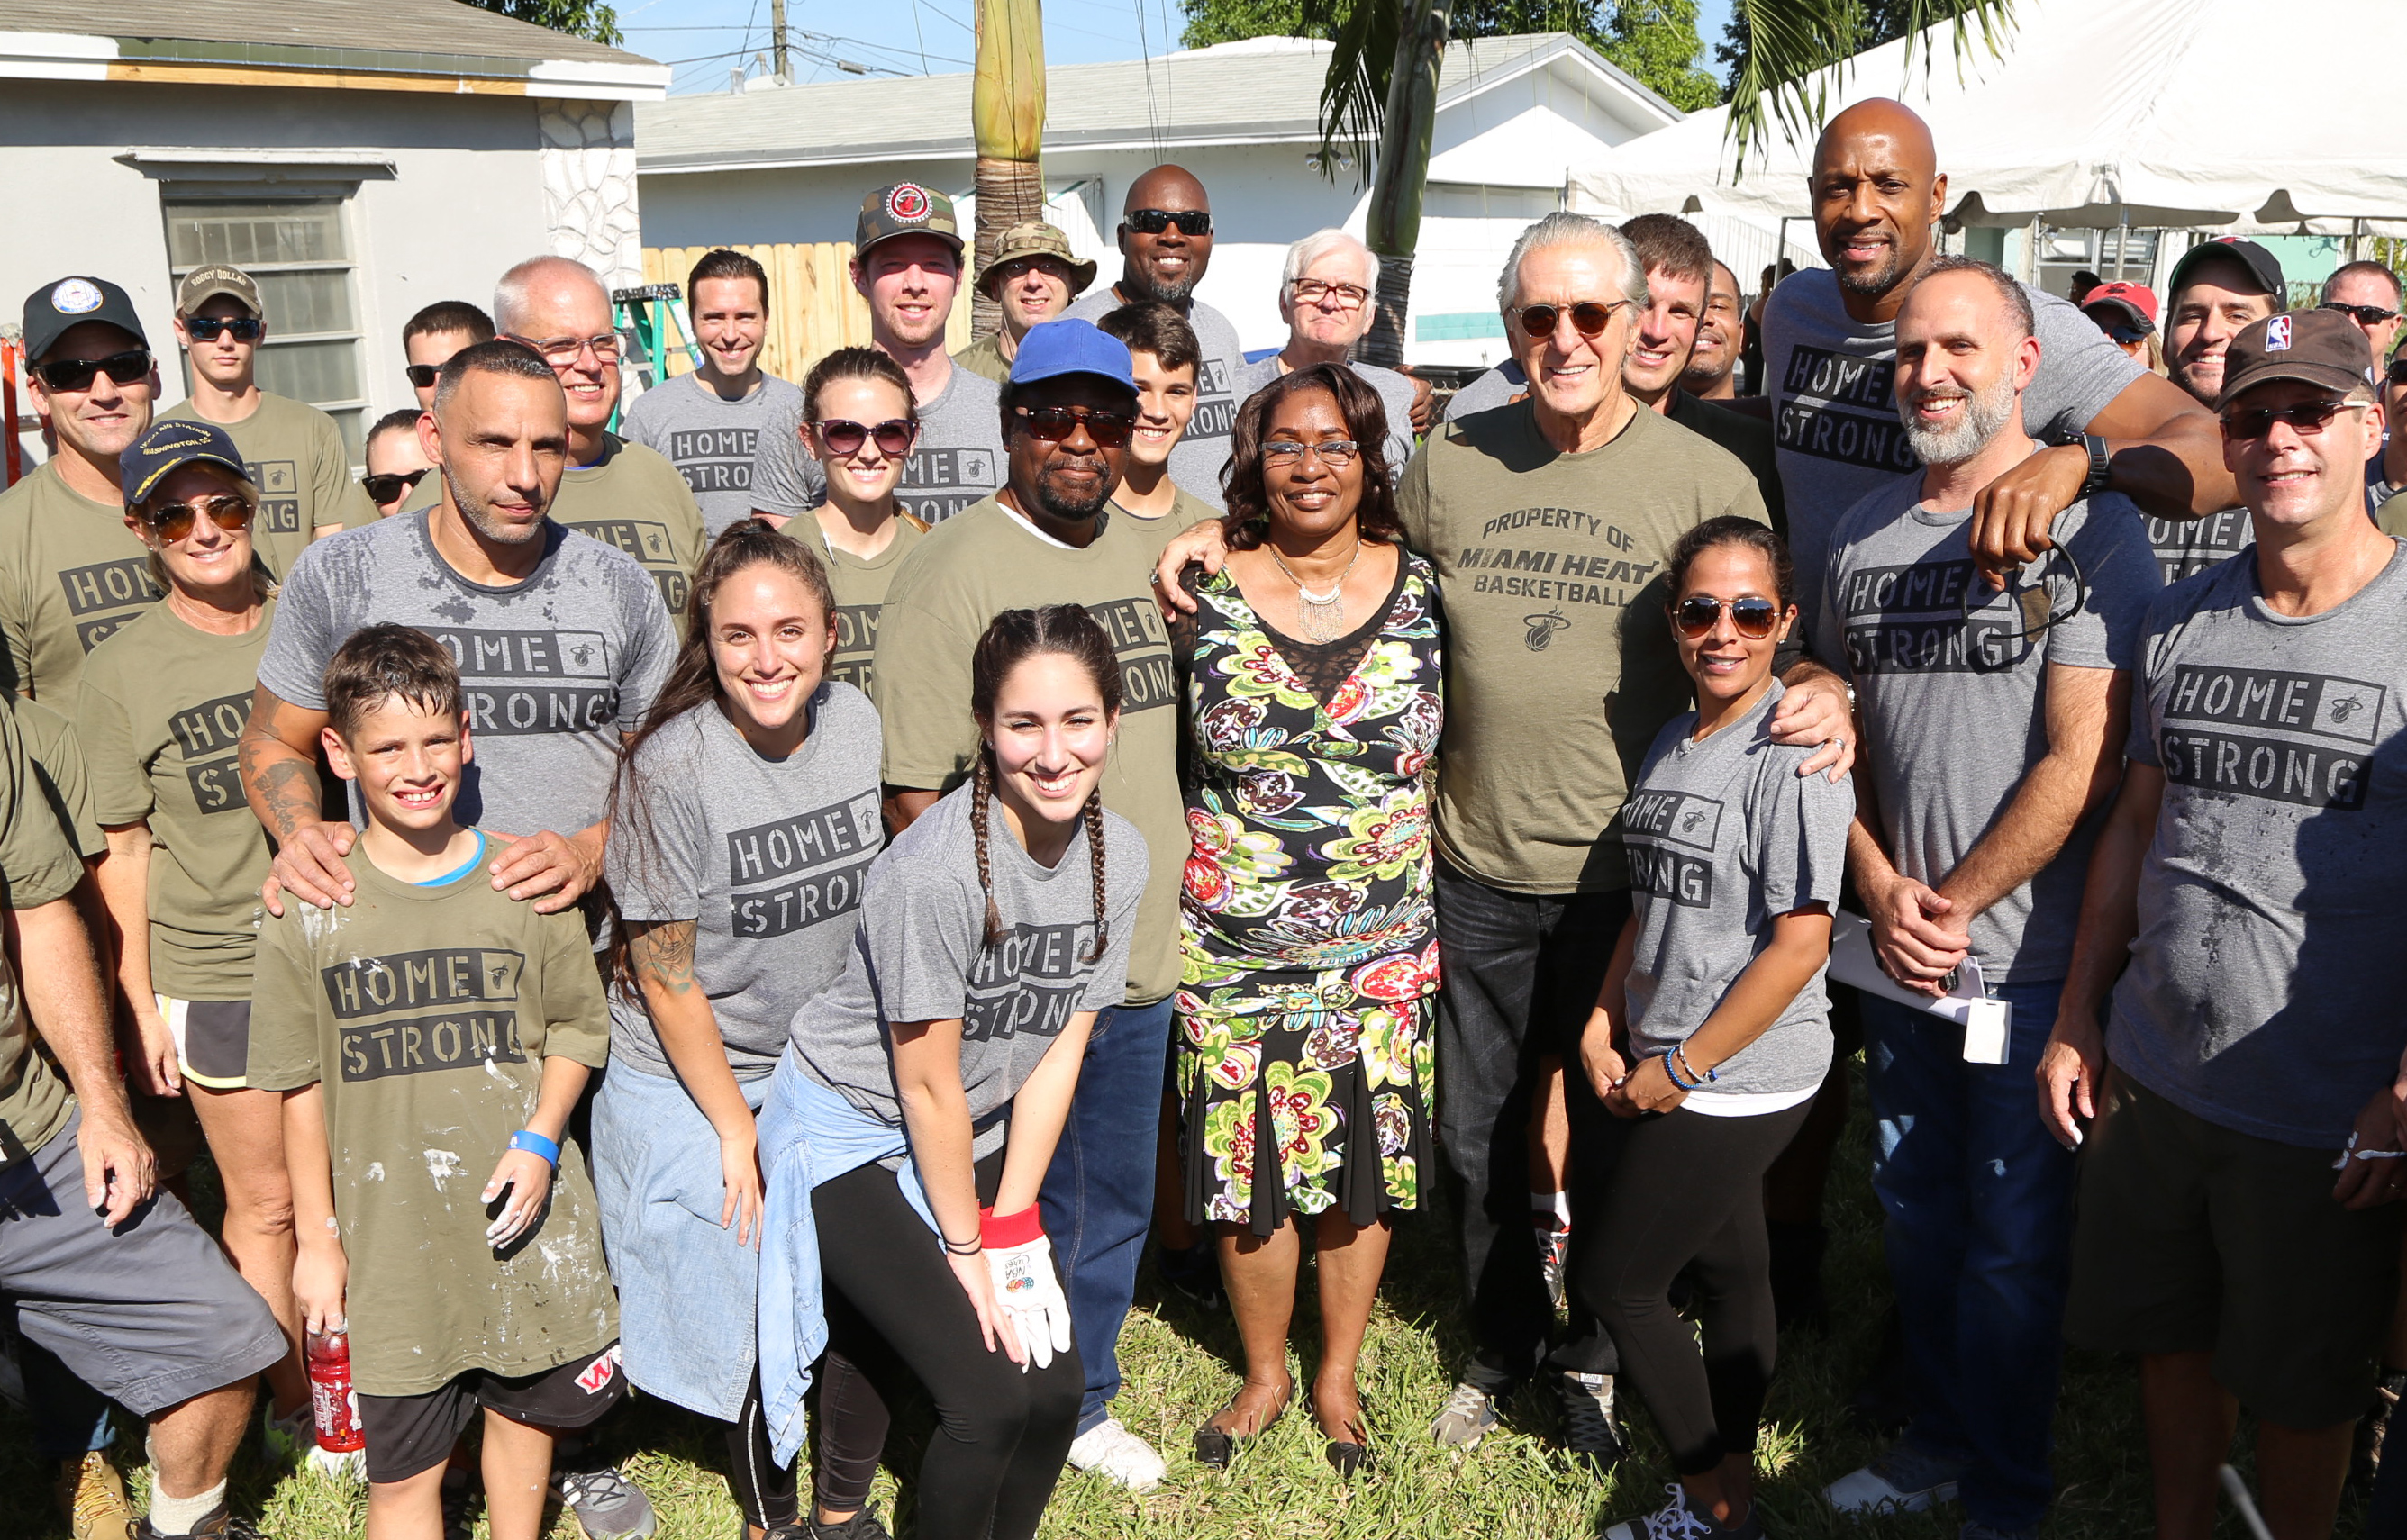 Miami HEAT Home Strong Renovate Homes for Local Veterans